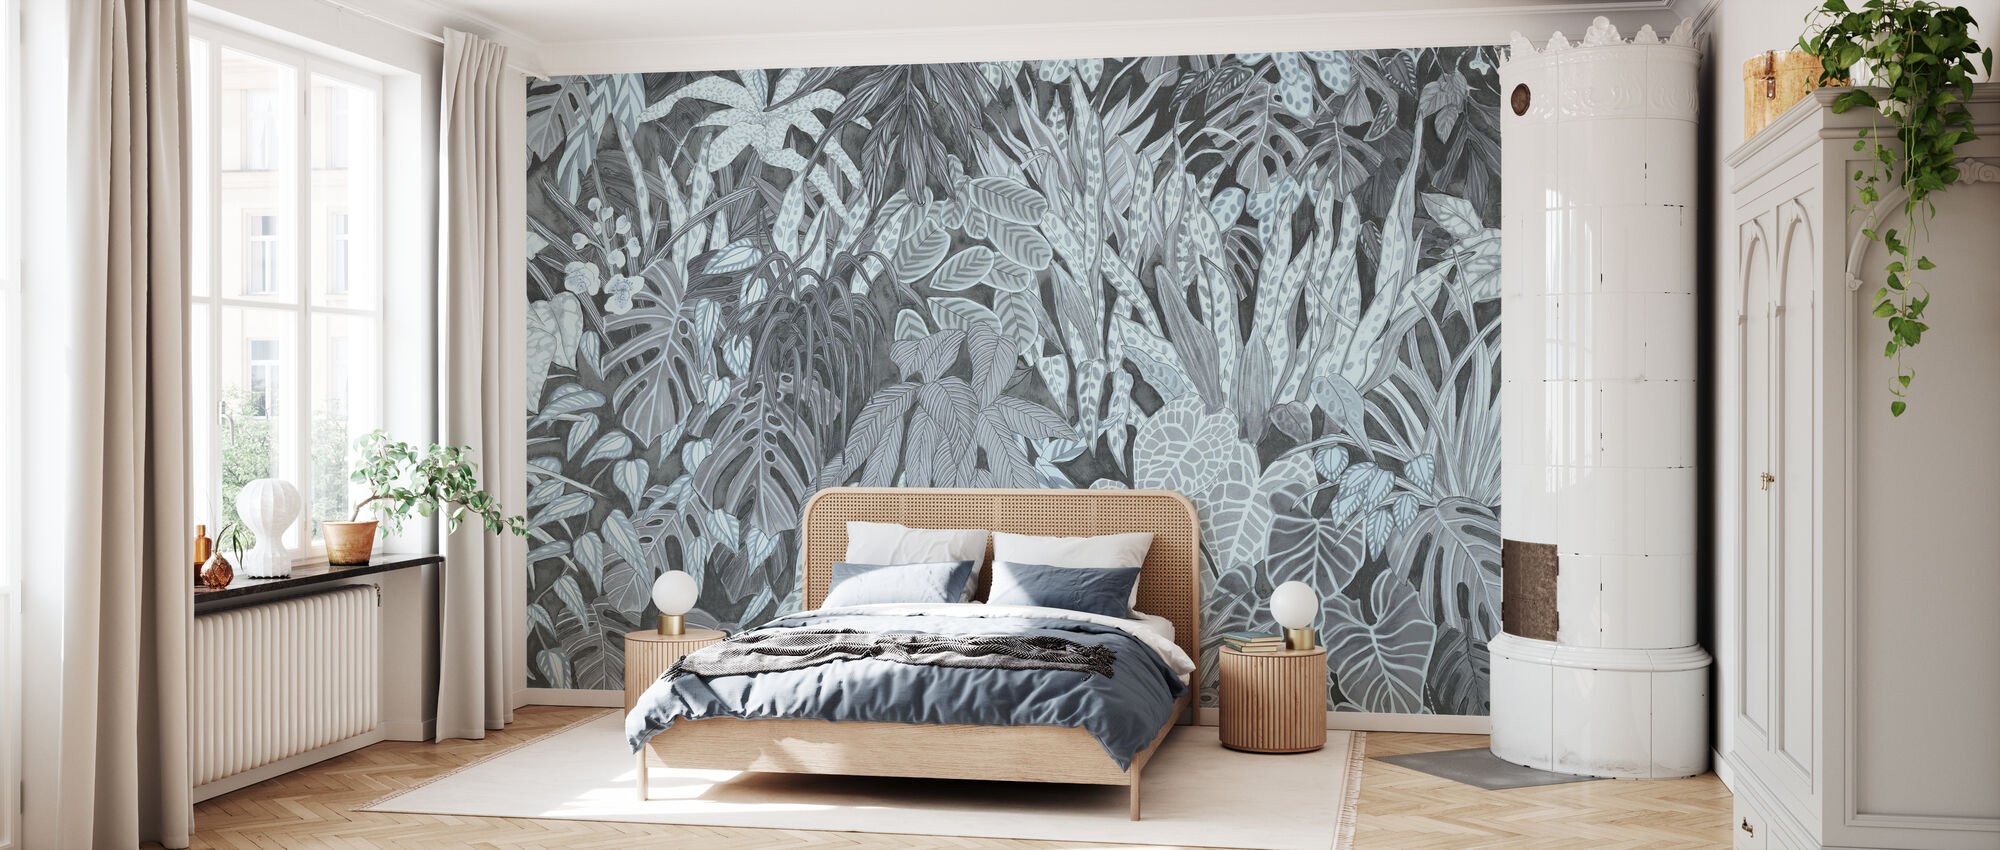 Tanglewood Forest Wall - Powder Blue - Wallpaper - Bedroom